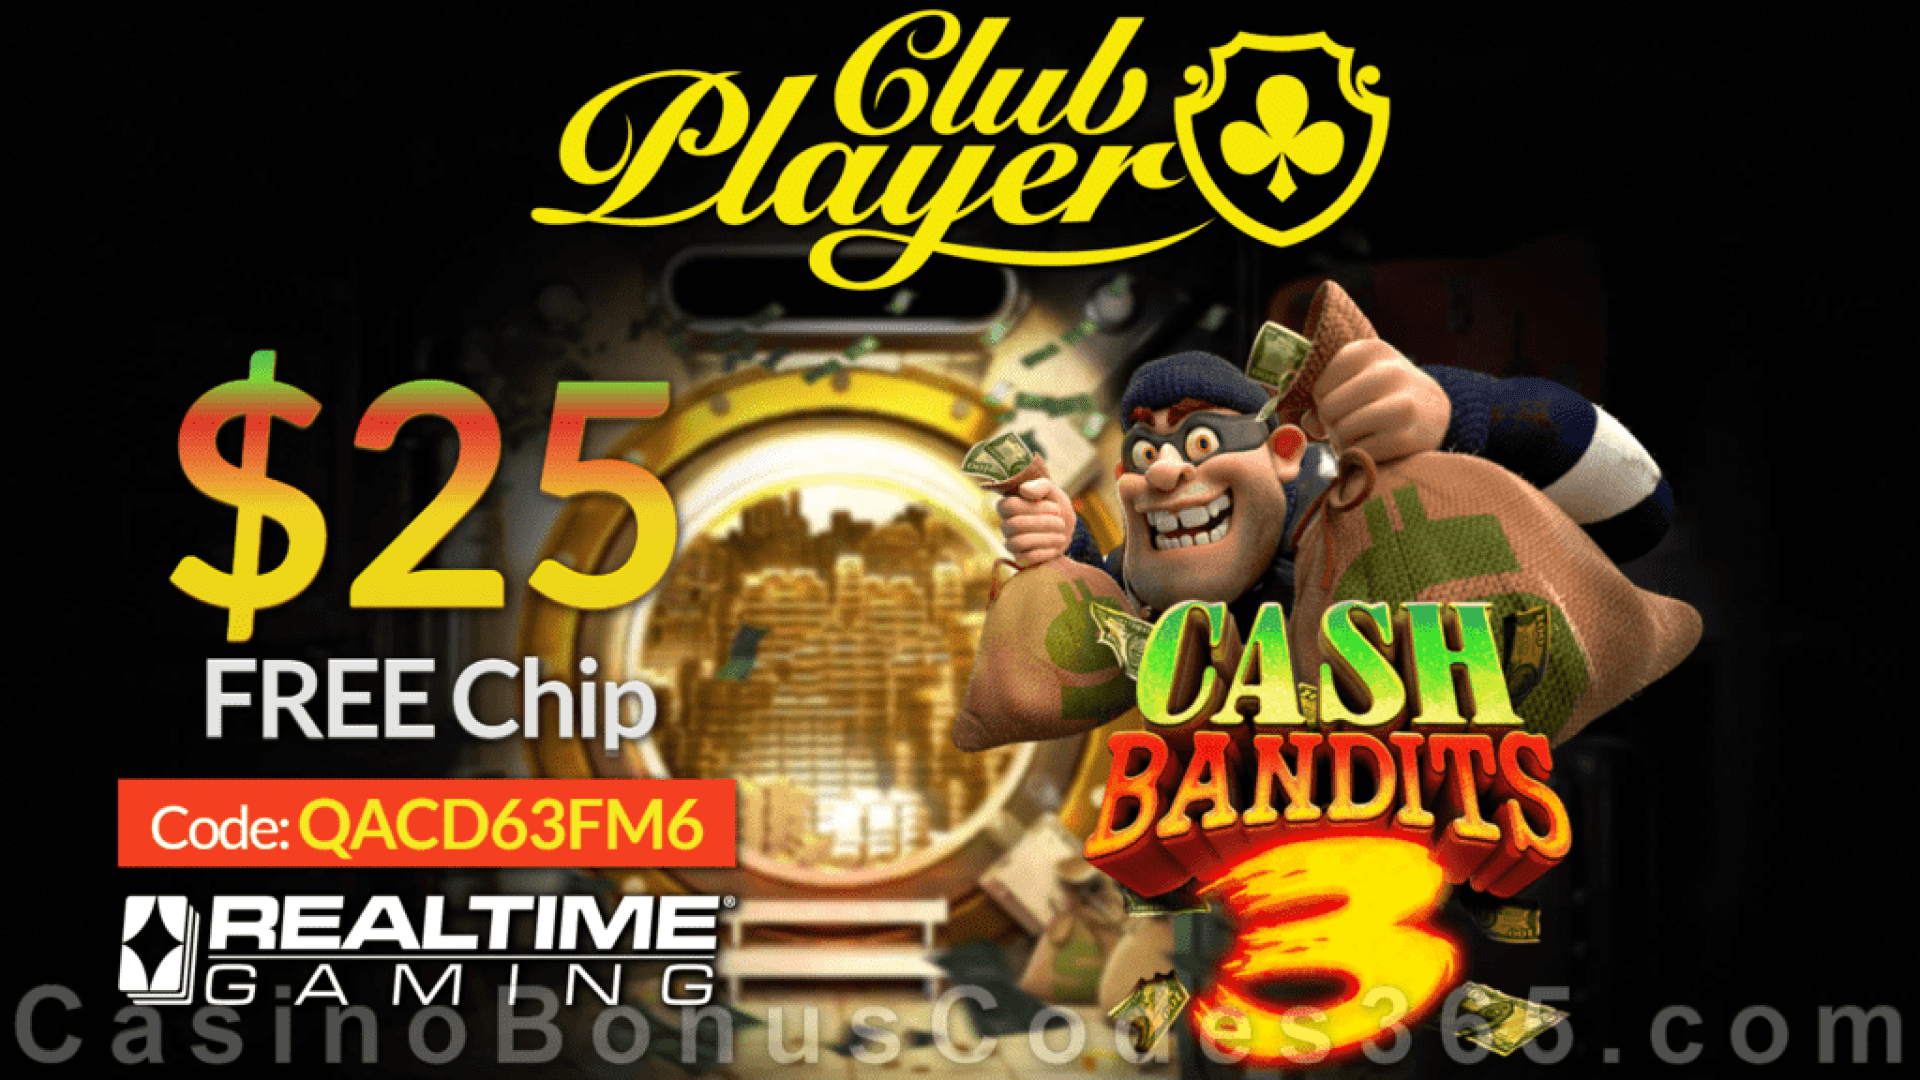 Club Player CasinoNew RTG Game  Cash Bandits 3 New RTG Game $25 FREE Chip Special Deal